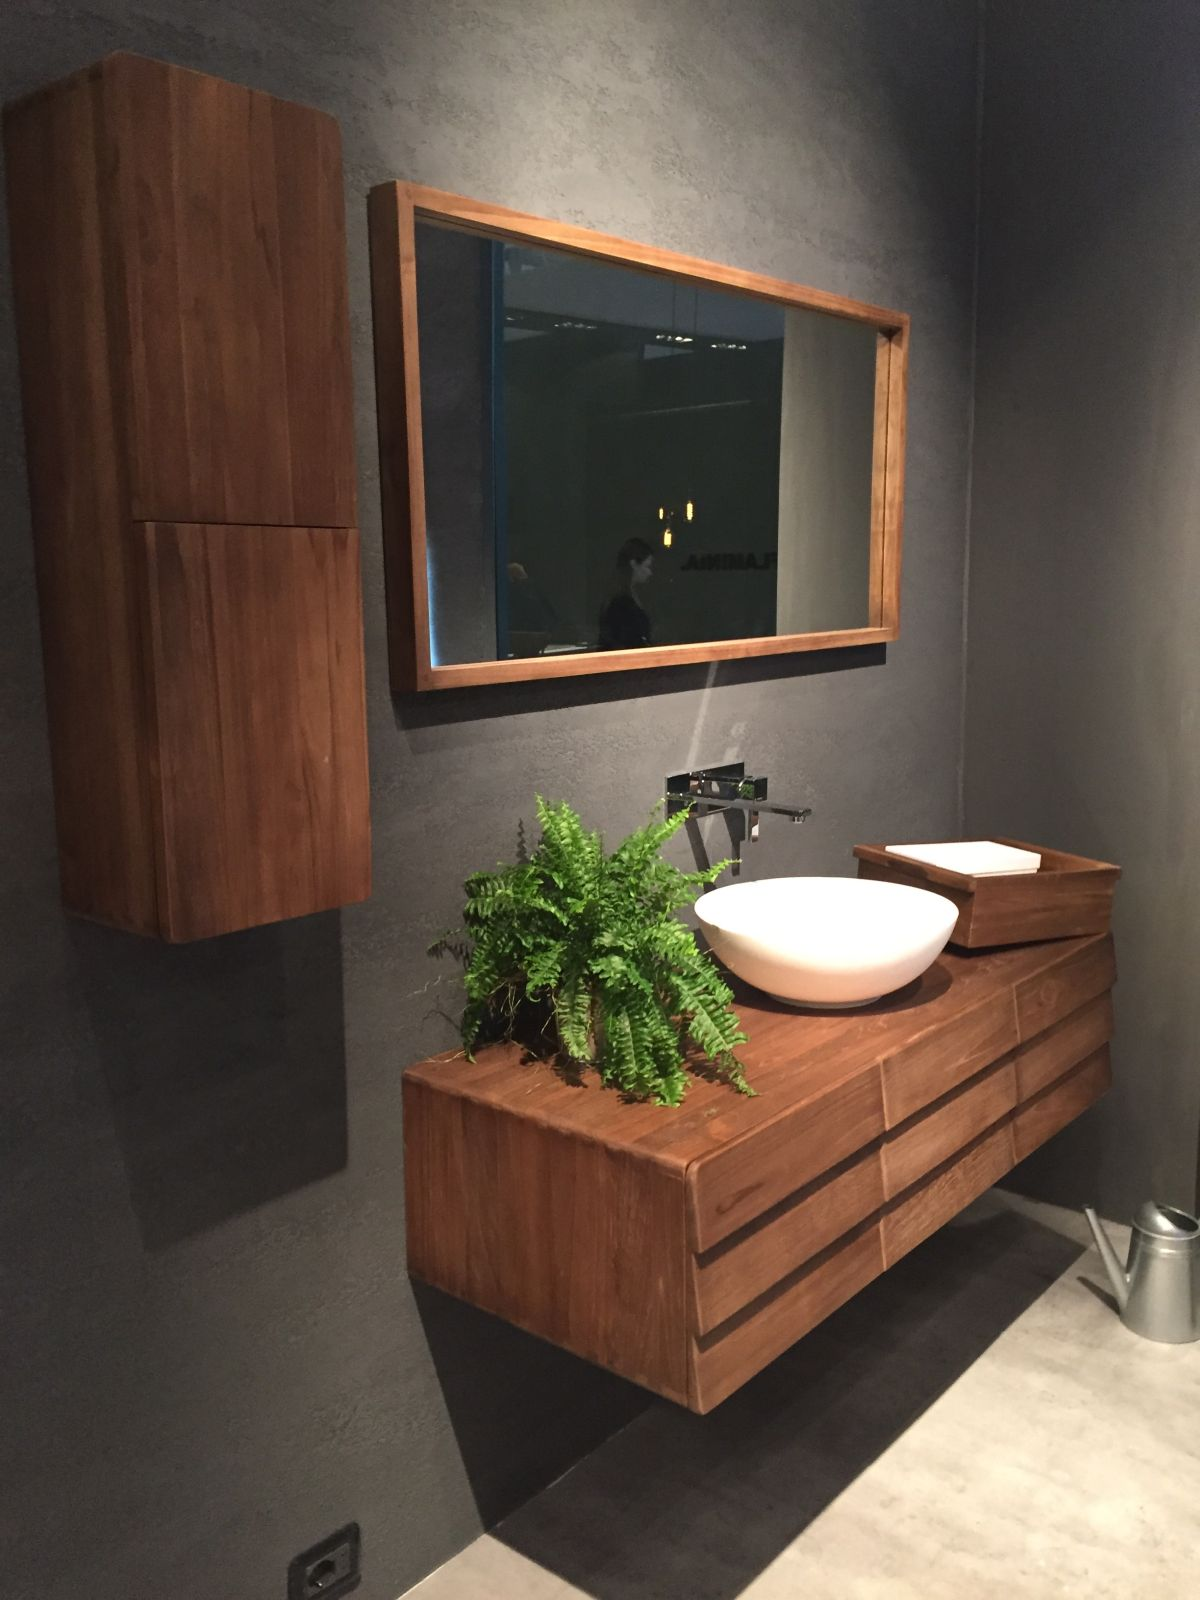 Stylish Ways To Decorate With Modern Bathroom Vanities - Where to buy modern bathroom vanities